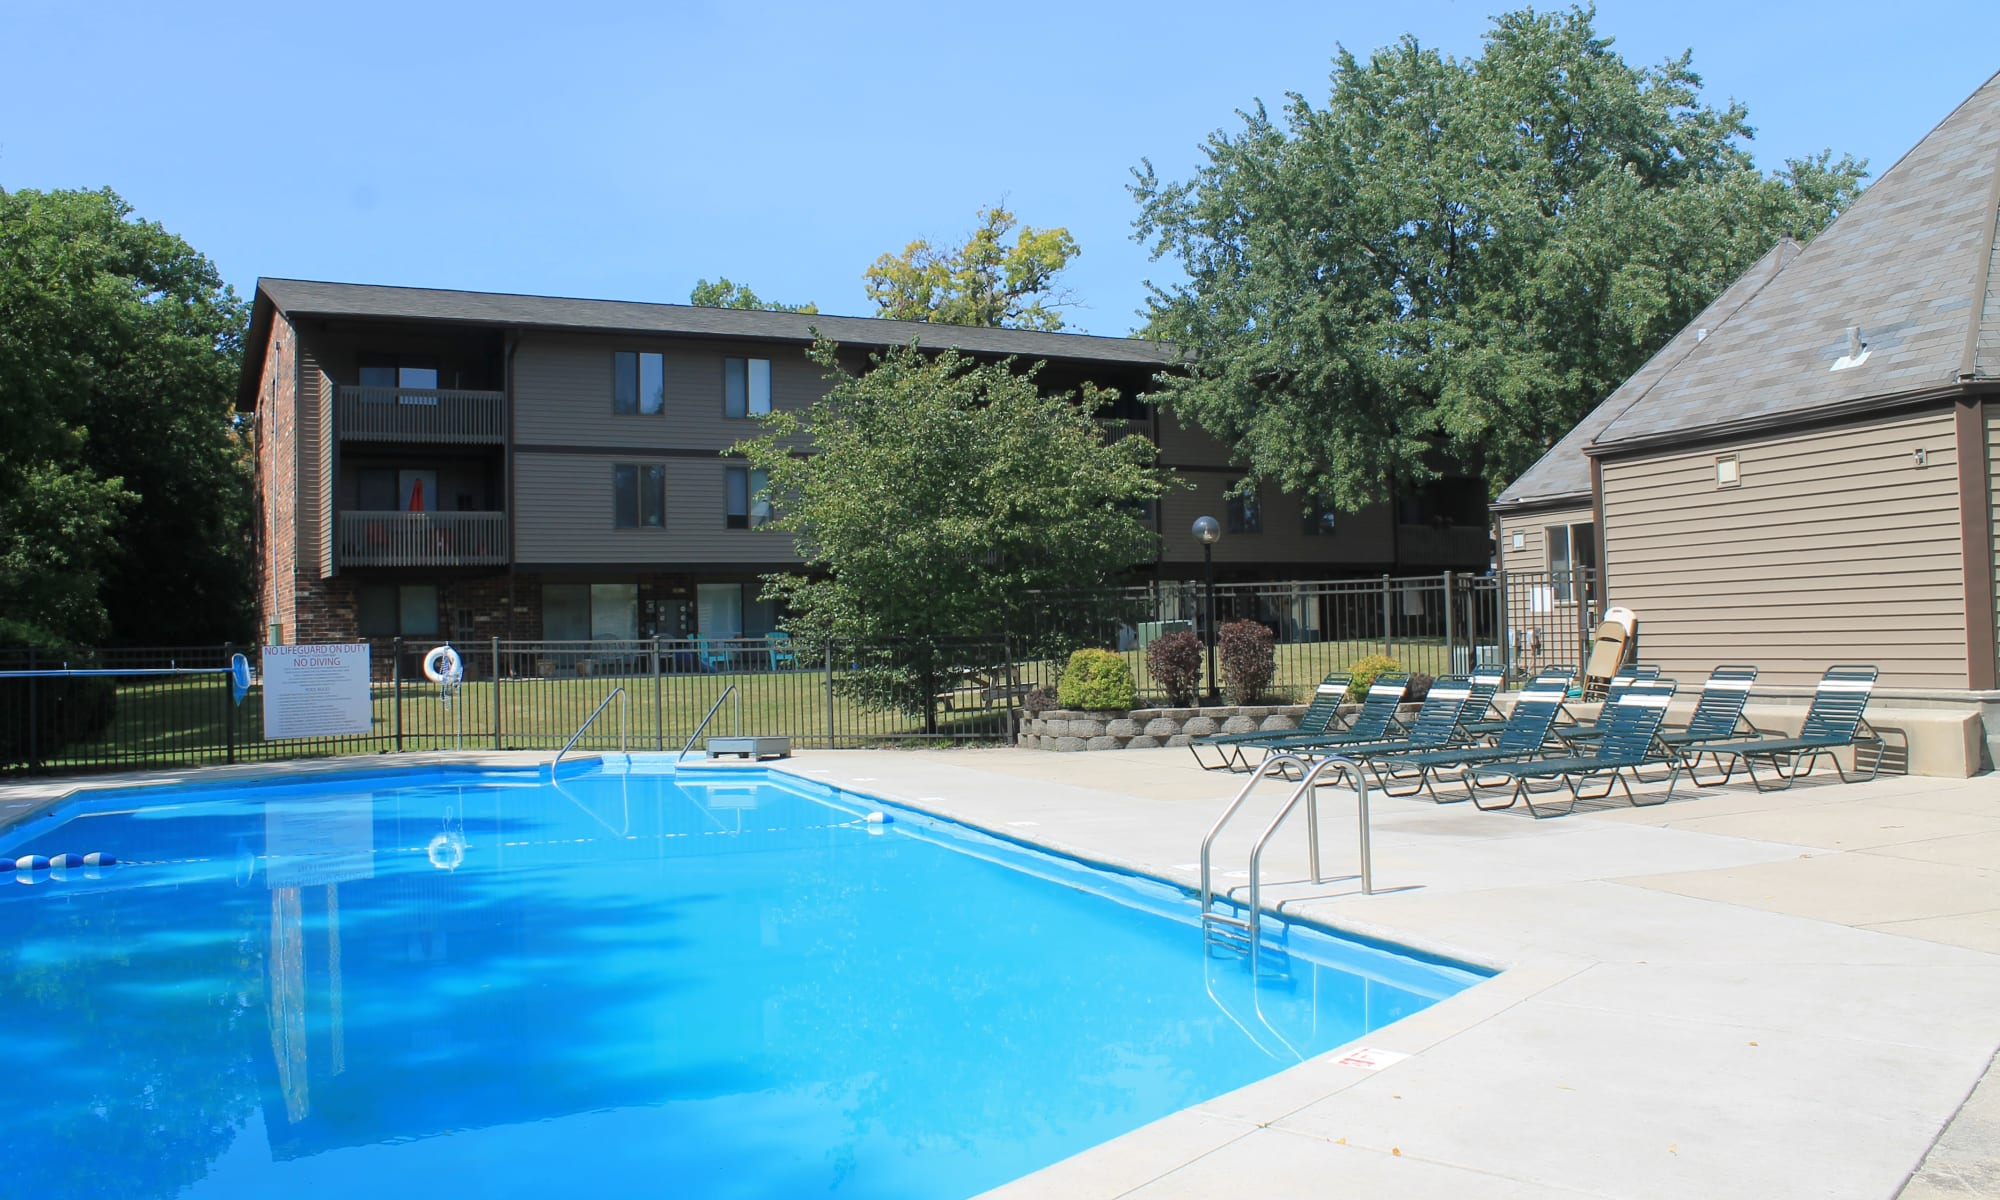 Apartments in Greenfield, WI